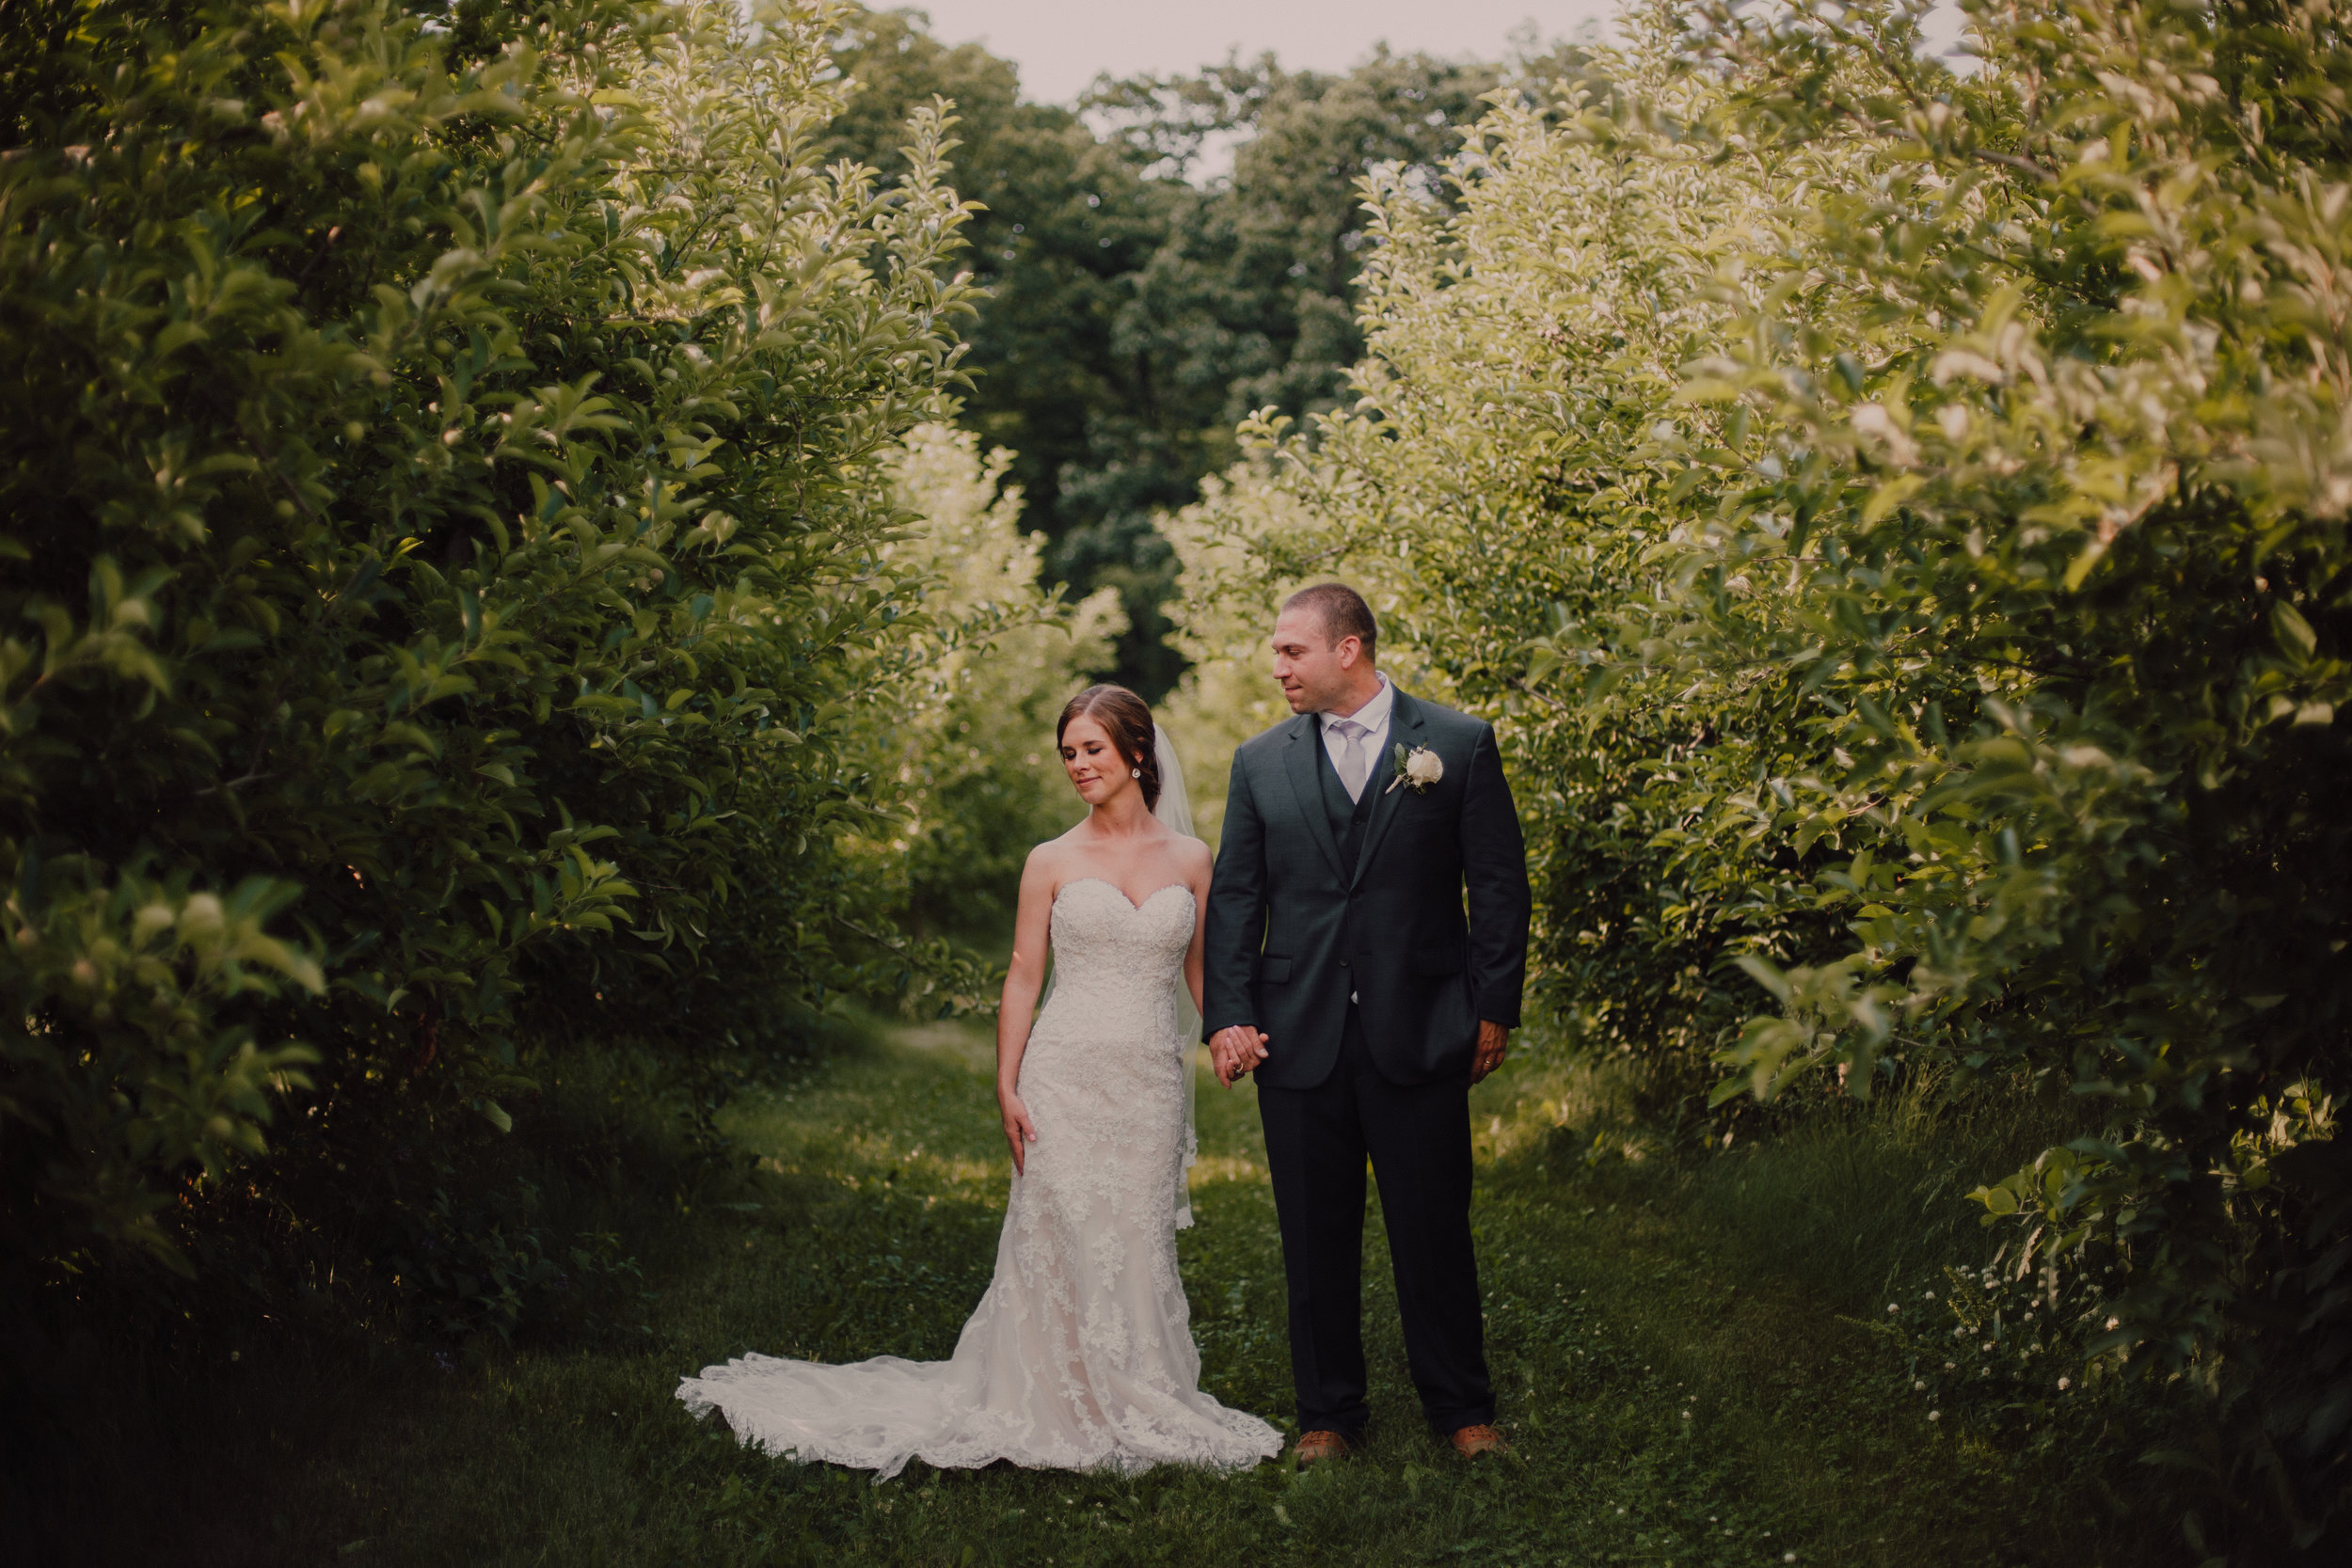 Apple Orchard Wedding - Church: Saint Gabriel ChurchVenue: County Line OrchardHair: Deanna Lewis MakeupMakeup: Tranquility SalonFlowers: Chalet FloristDress: Stella York from Martellen's Dress and Bridal BoutiqueENGAGEMENT SHOOT